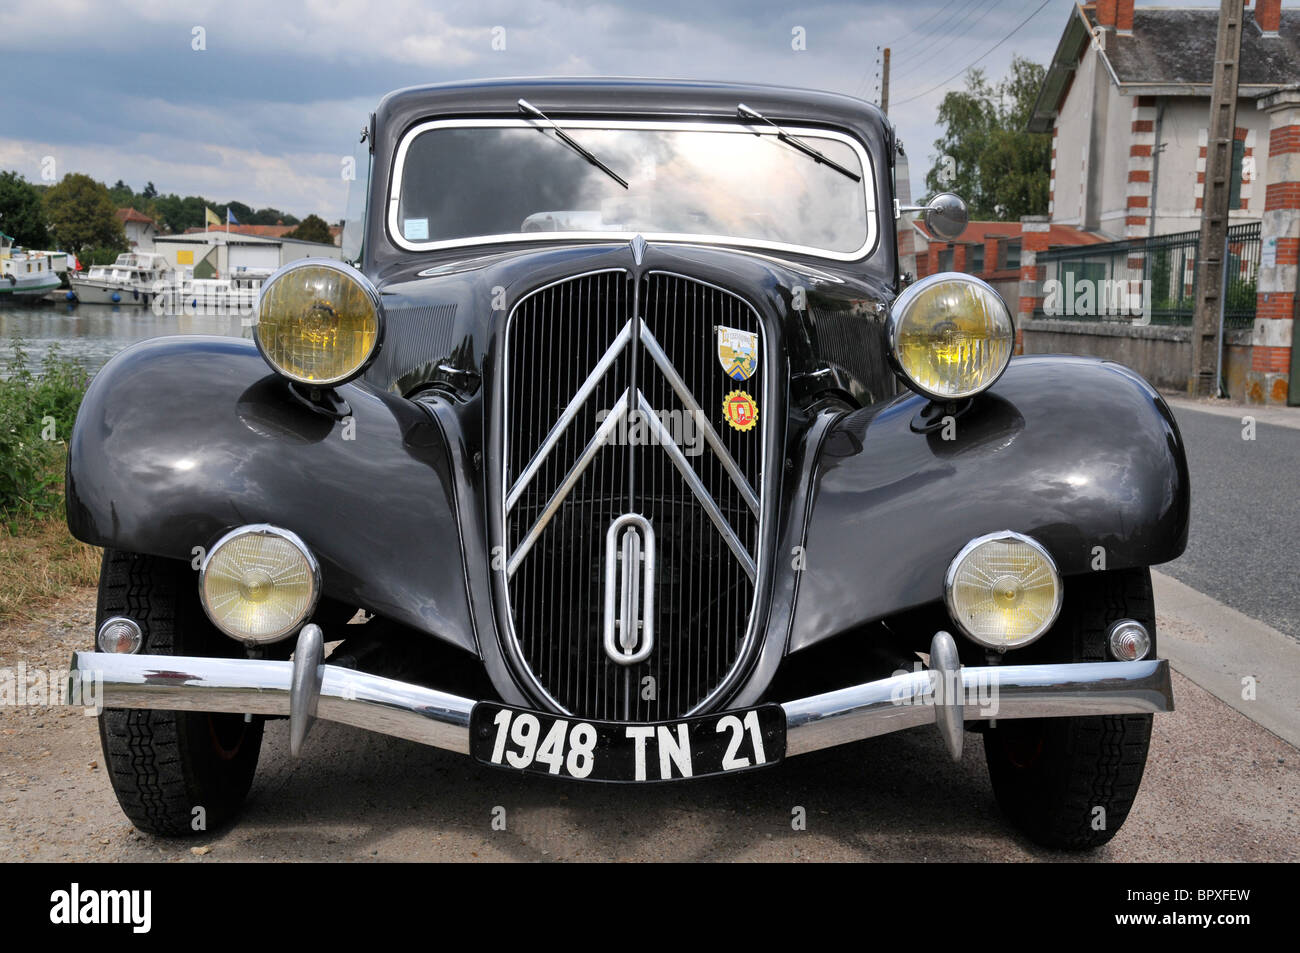 Citroen Traction avant Stockbild